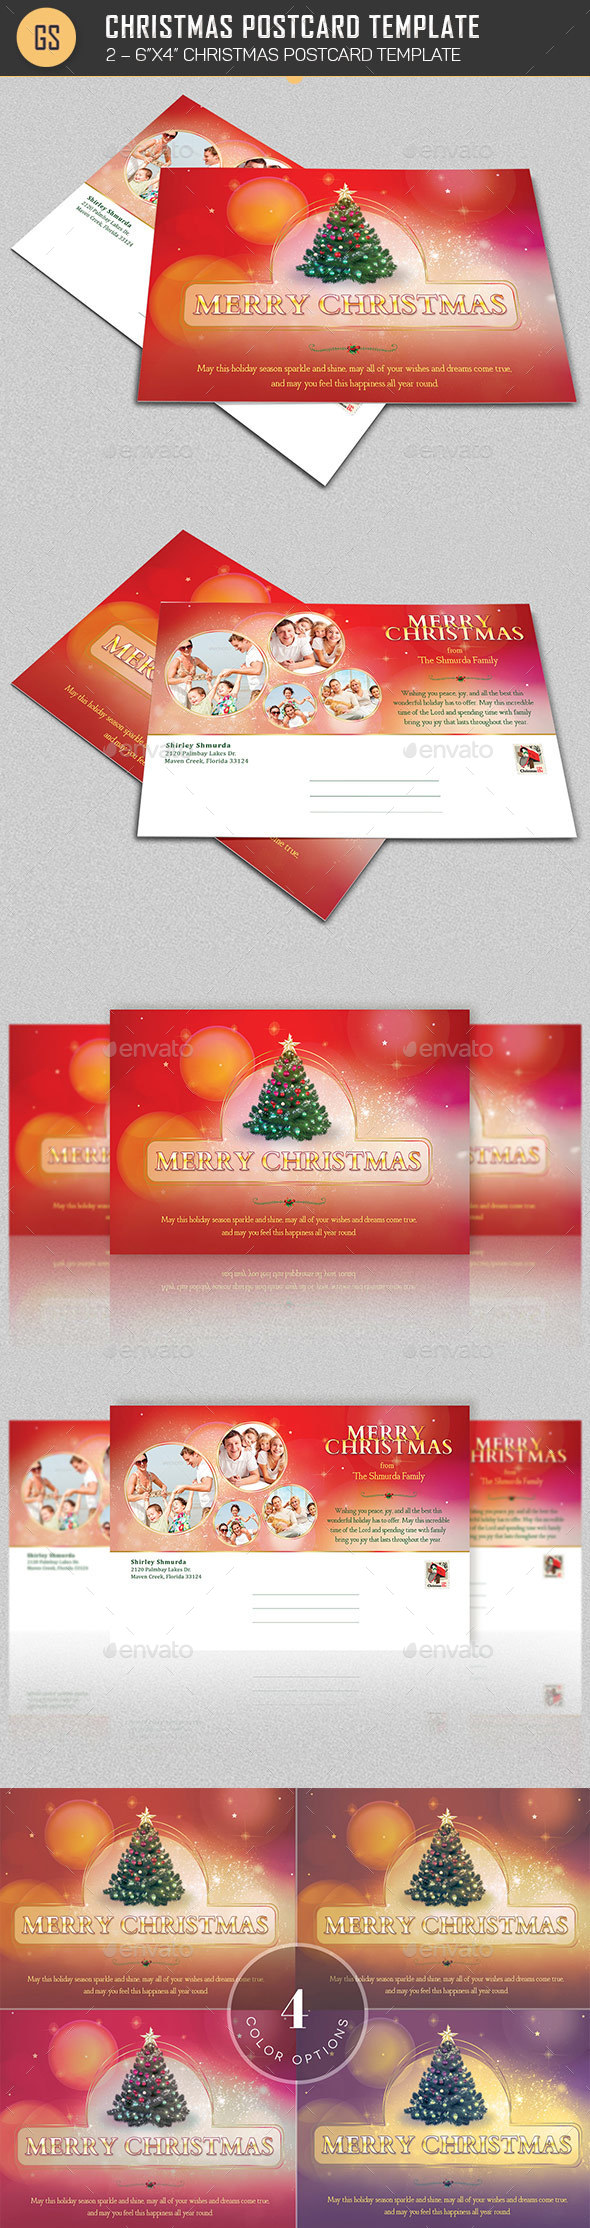 Christmas Postcard Template - Holiday Greeting Cards